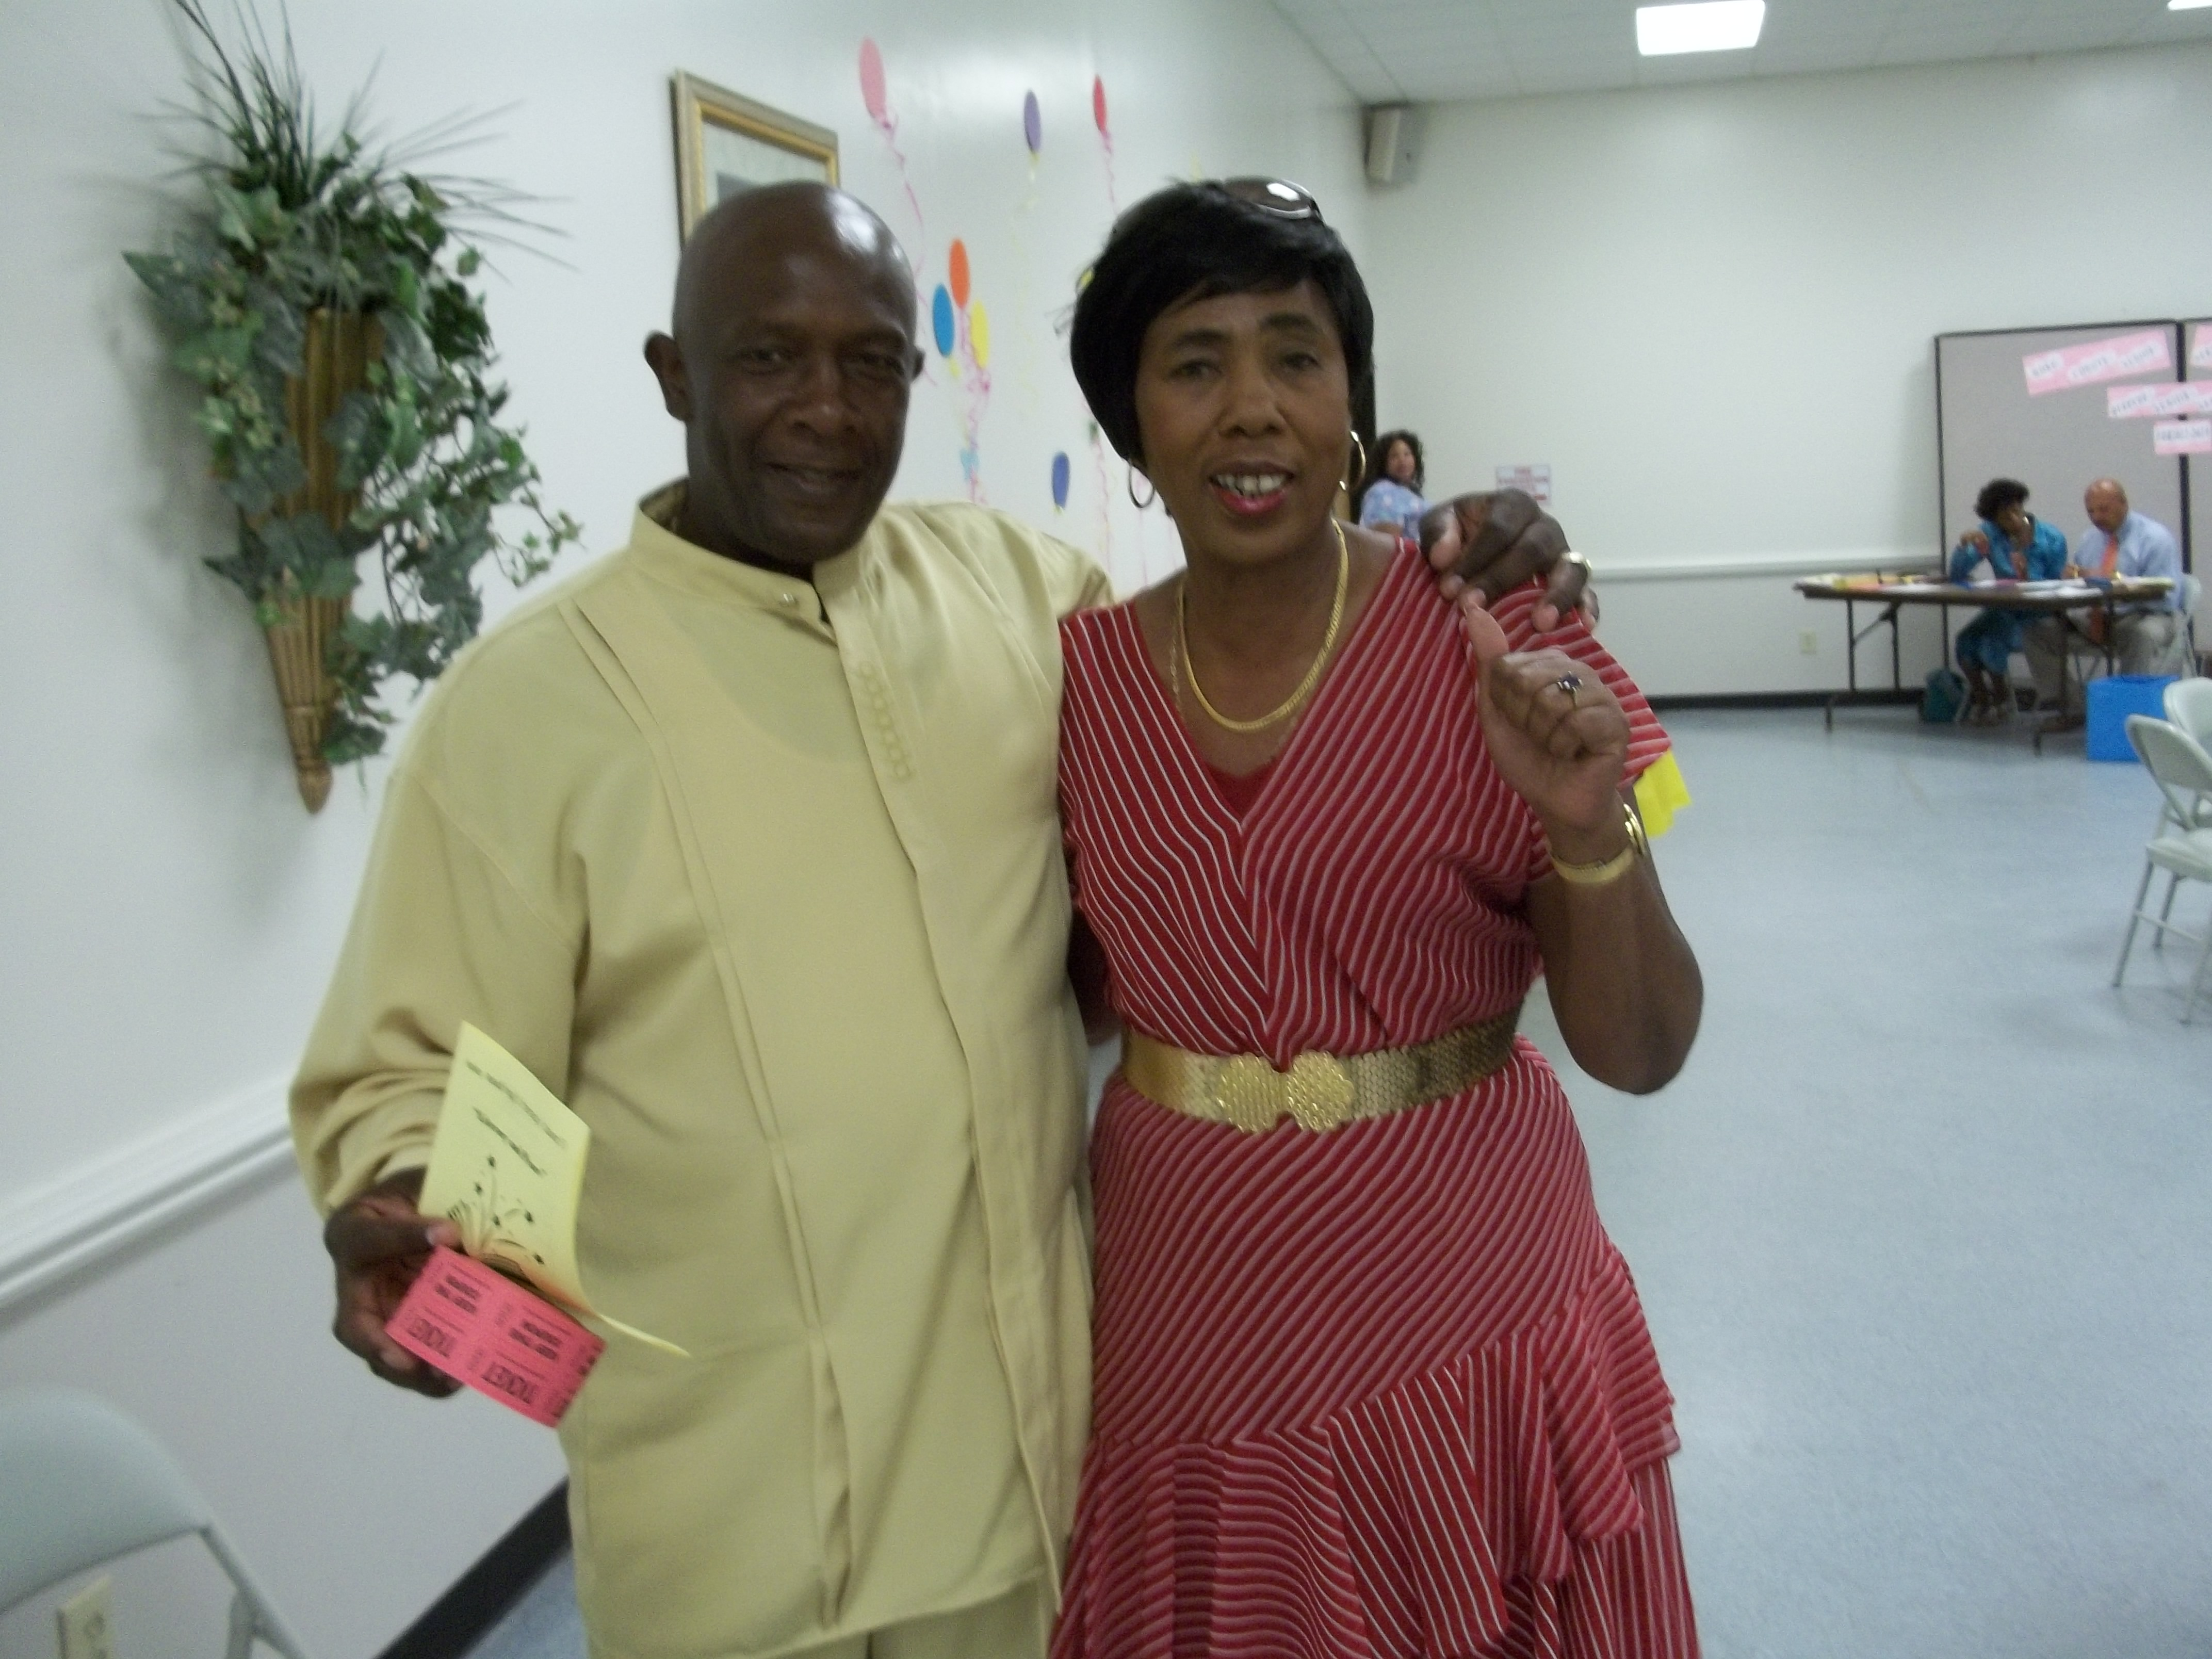 Rodney Fairley and Barbara Buie